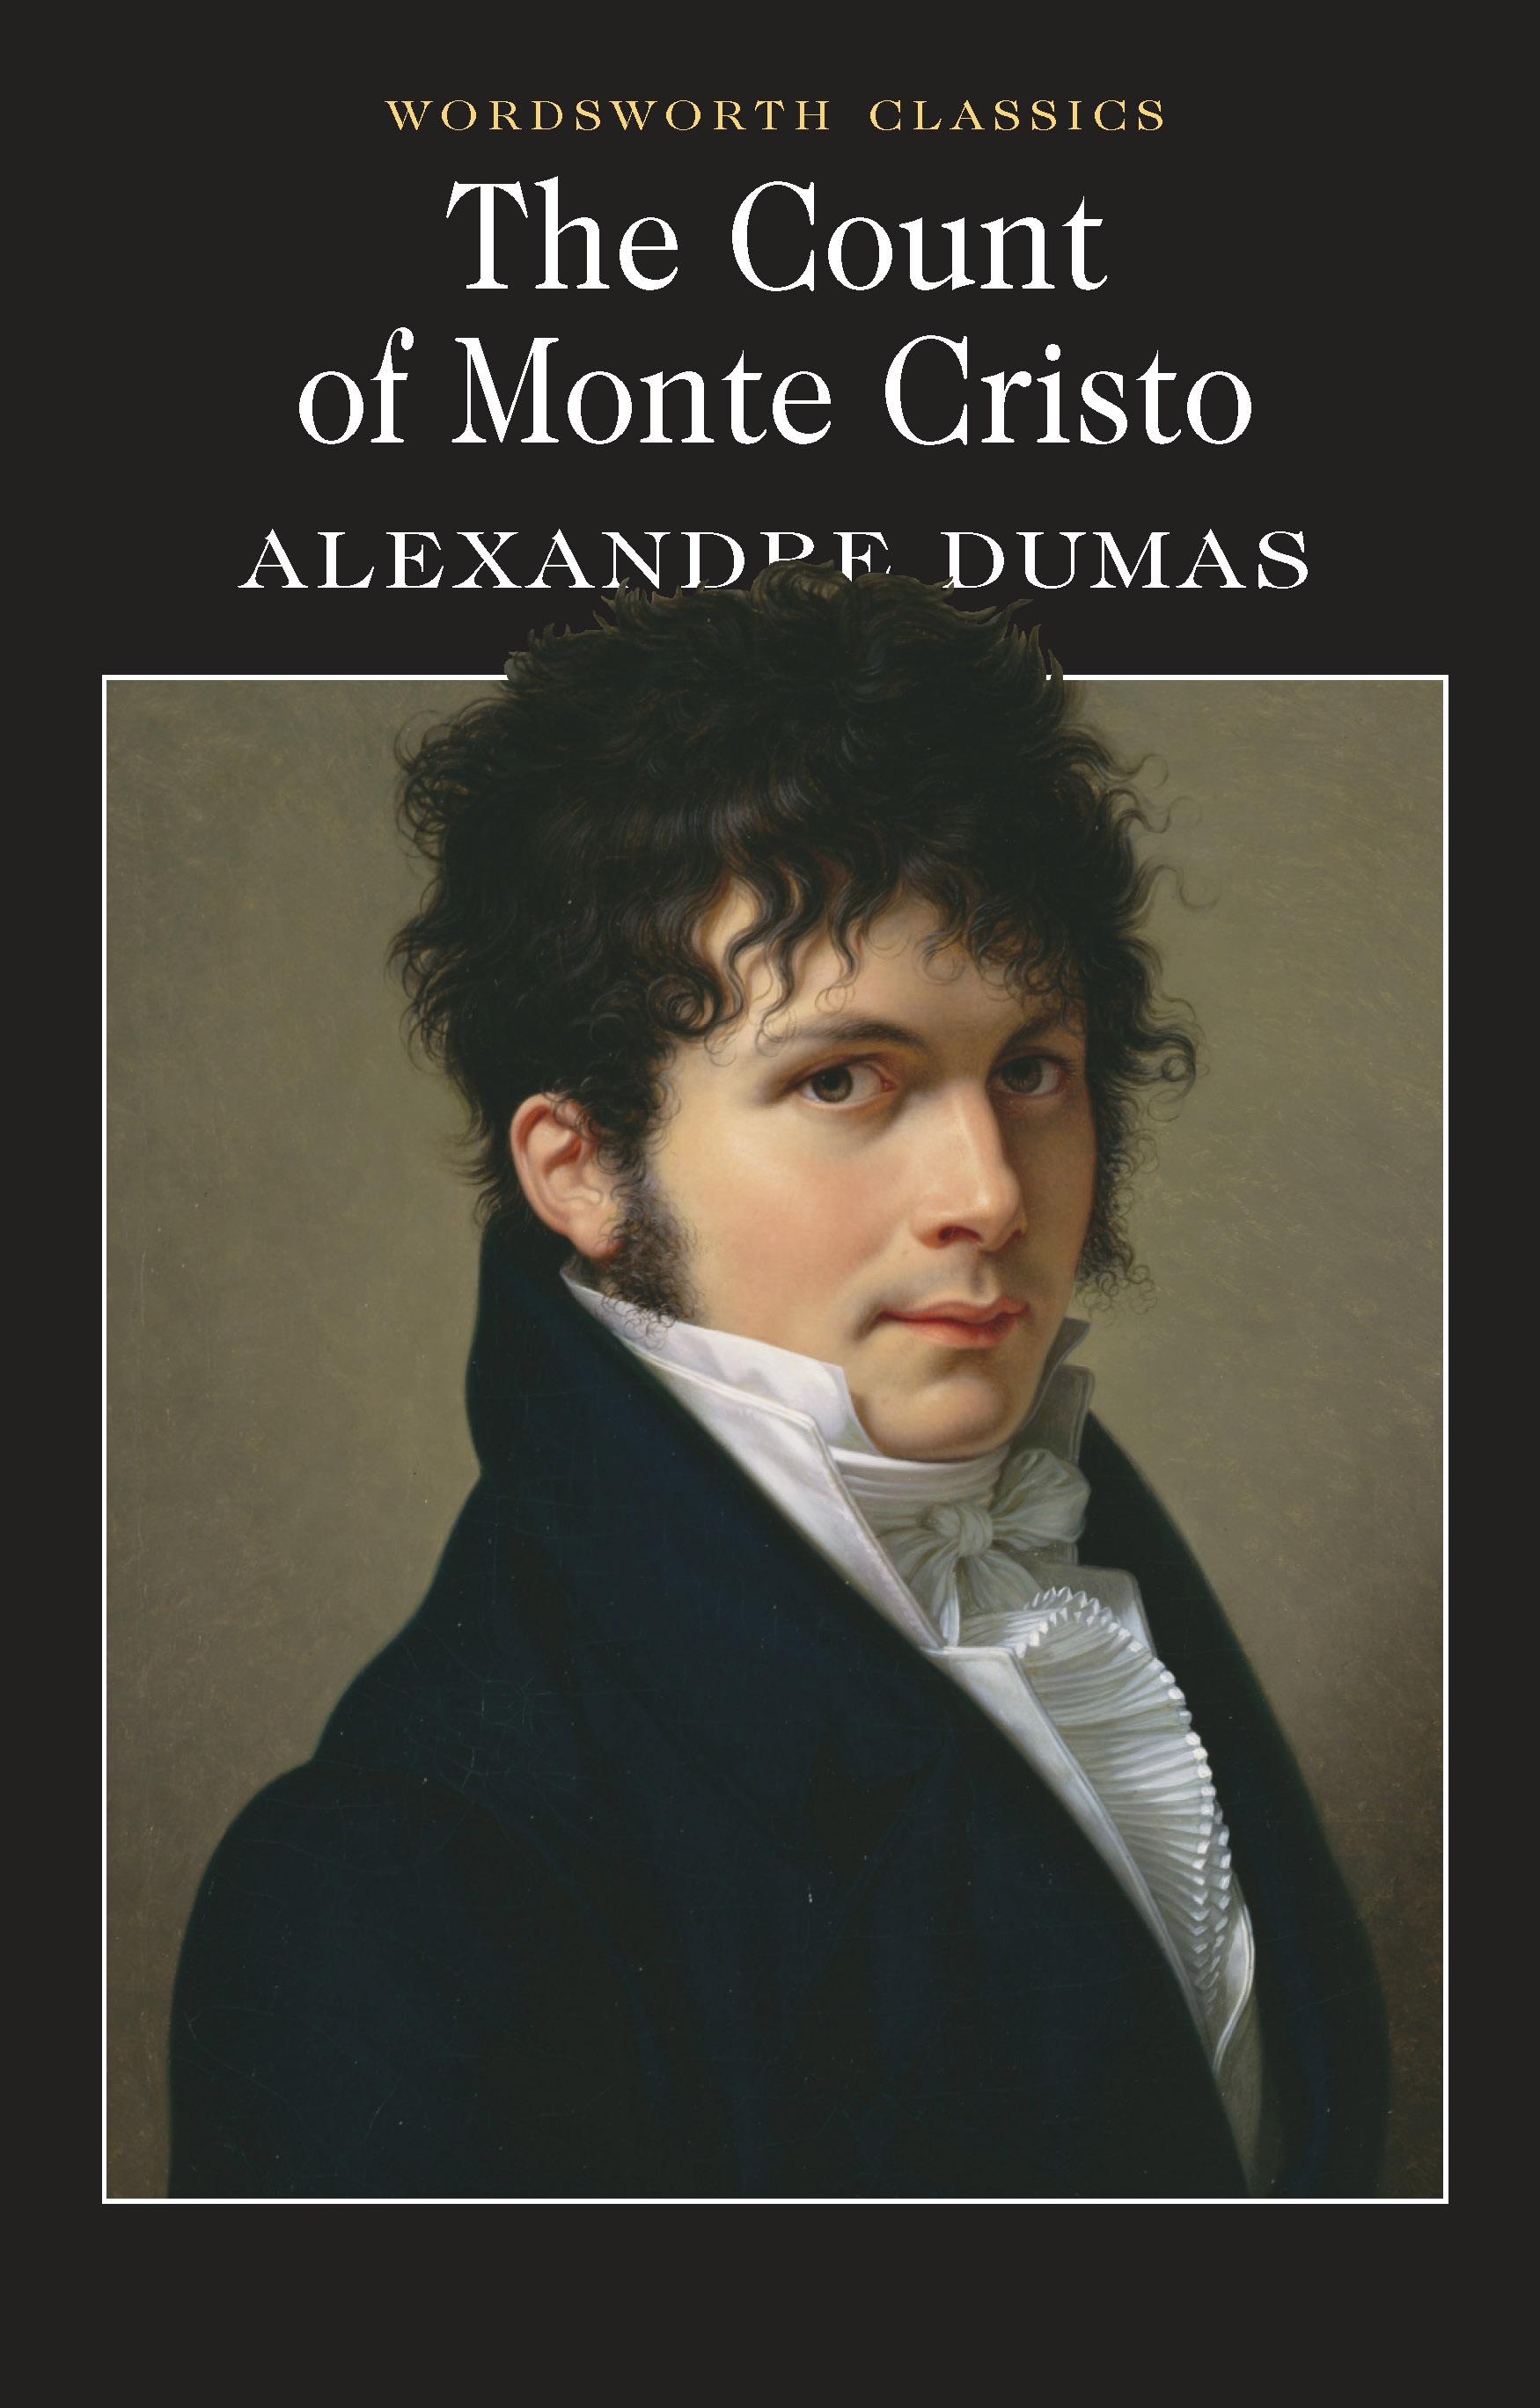 an analysis of alexandre dumass the count of monte cristo This one-page guide includes a plot summary and brief analysis of the count of monte cristo by alexandre dumas the count of monte cristo is an adventure novel by quotes, and essay topics this one-page guide includes a plot summary and brief analysis of the count of monte cristo by.